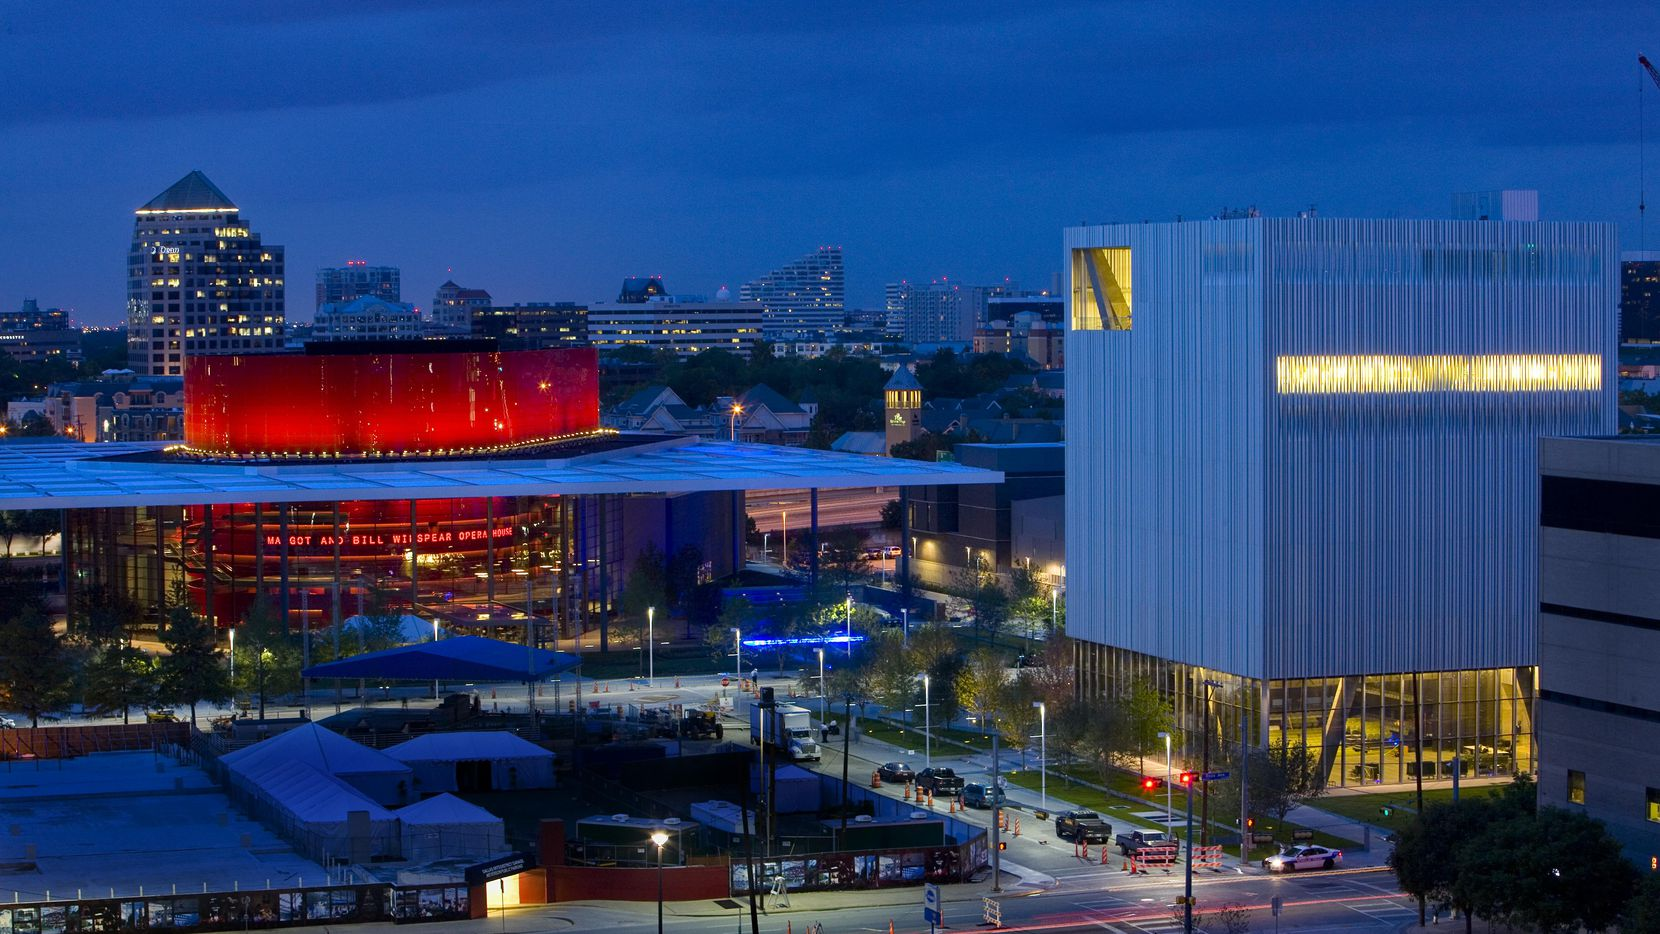 Exterior shots of the Wyly Theatre (right) and the Winspear Opera House (left) in downtown Dallas.